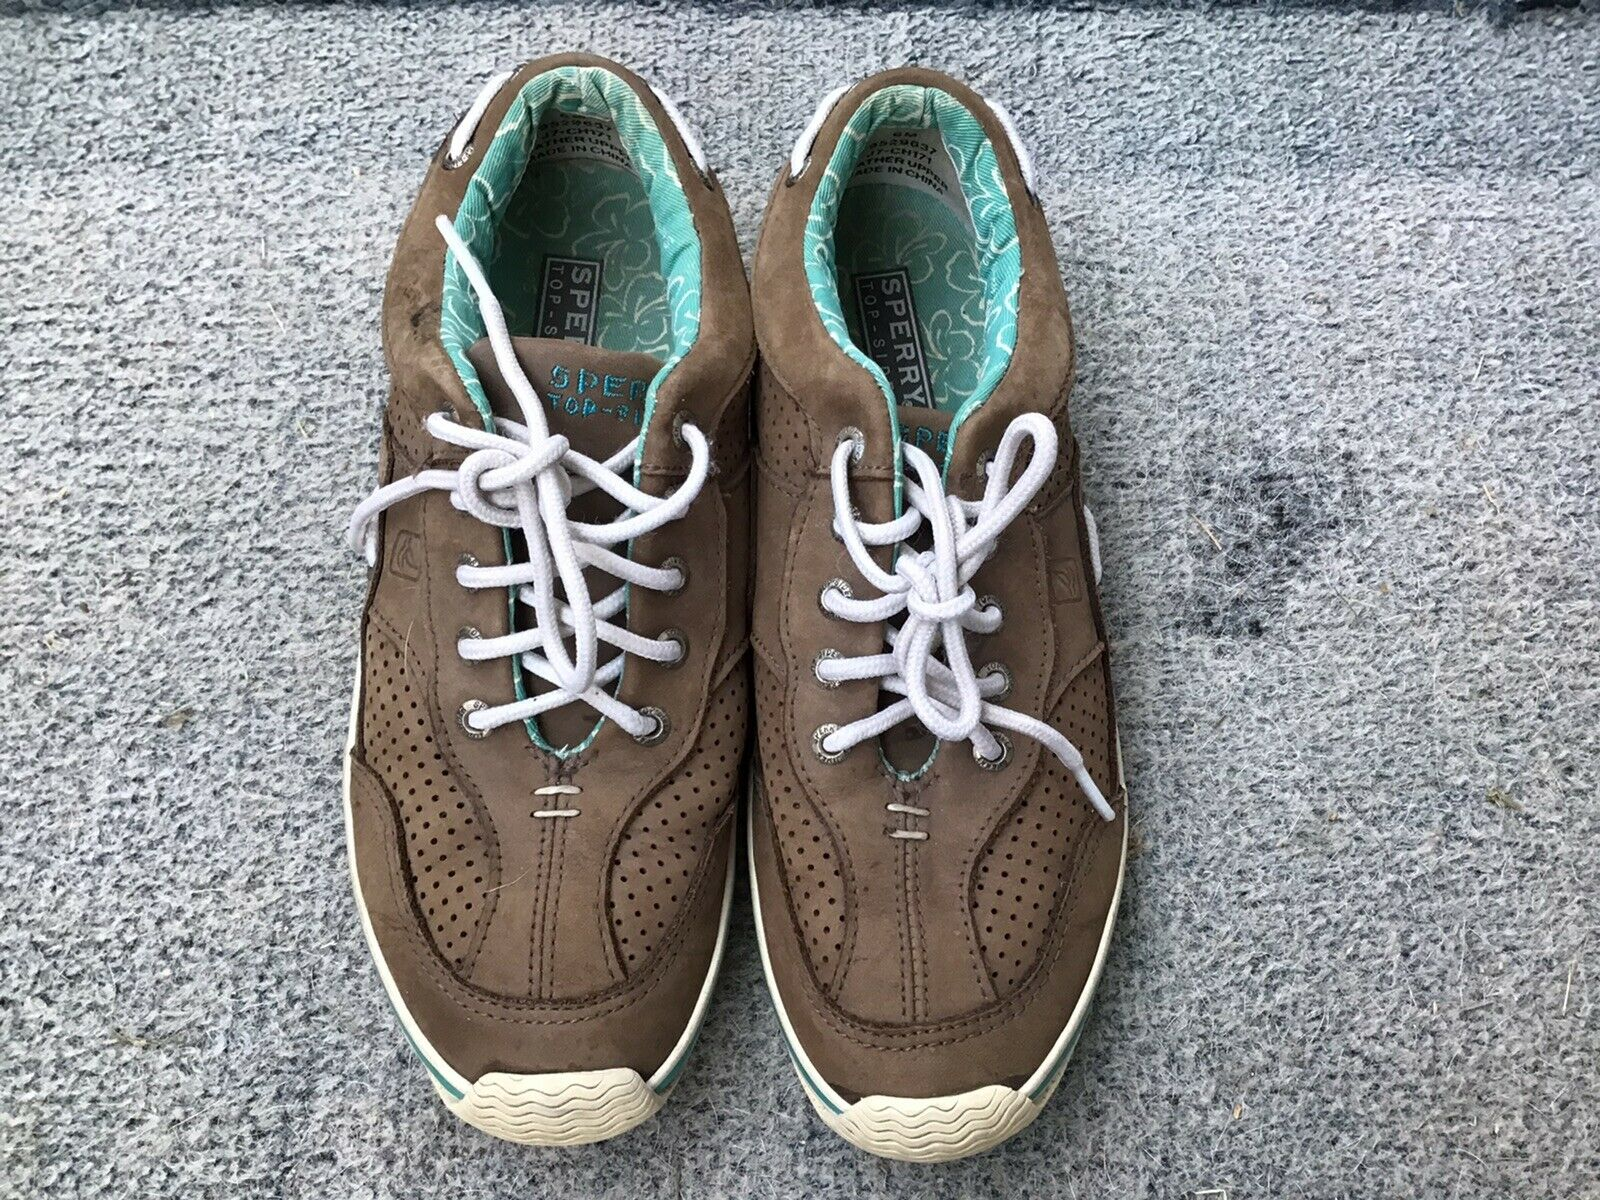 Sperry Top-sider Woman's Brown Leather Boat Shoes Size 6. #9529637.